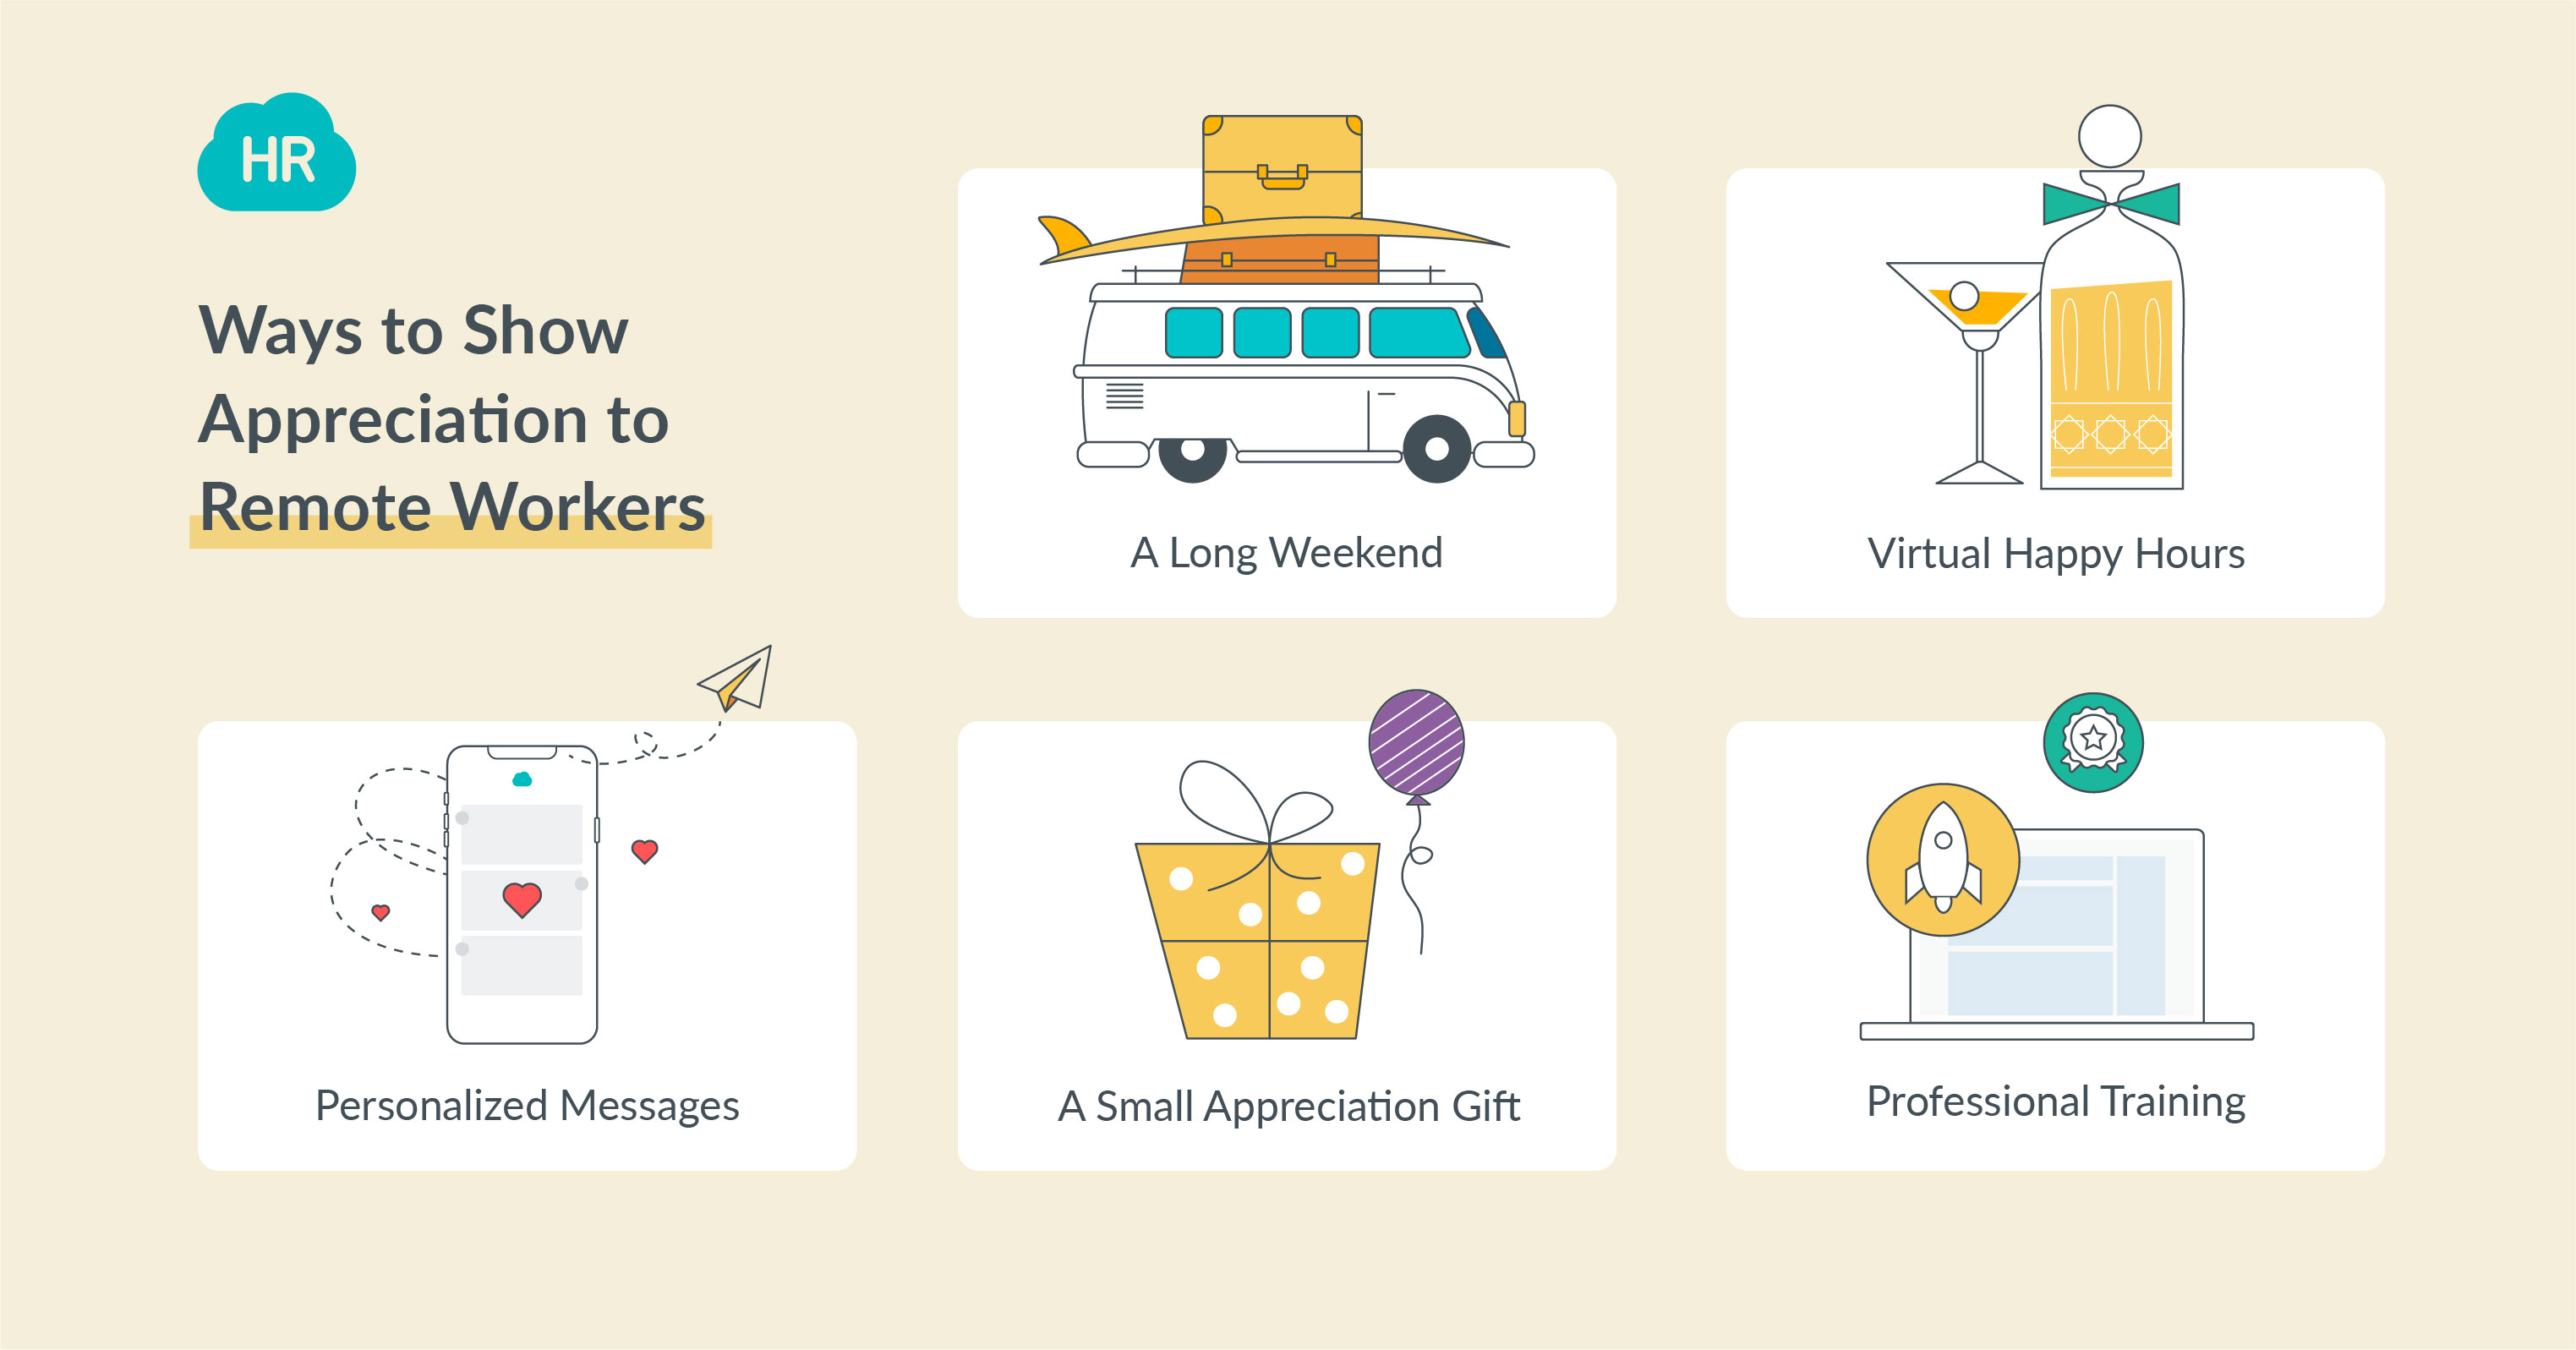 Ways to Show Appreciation To Remote Workers